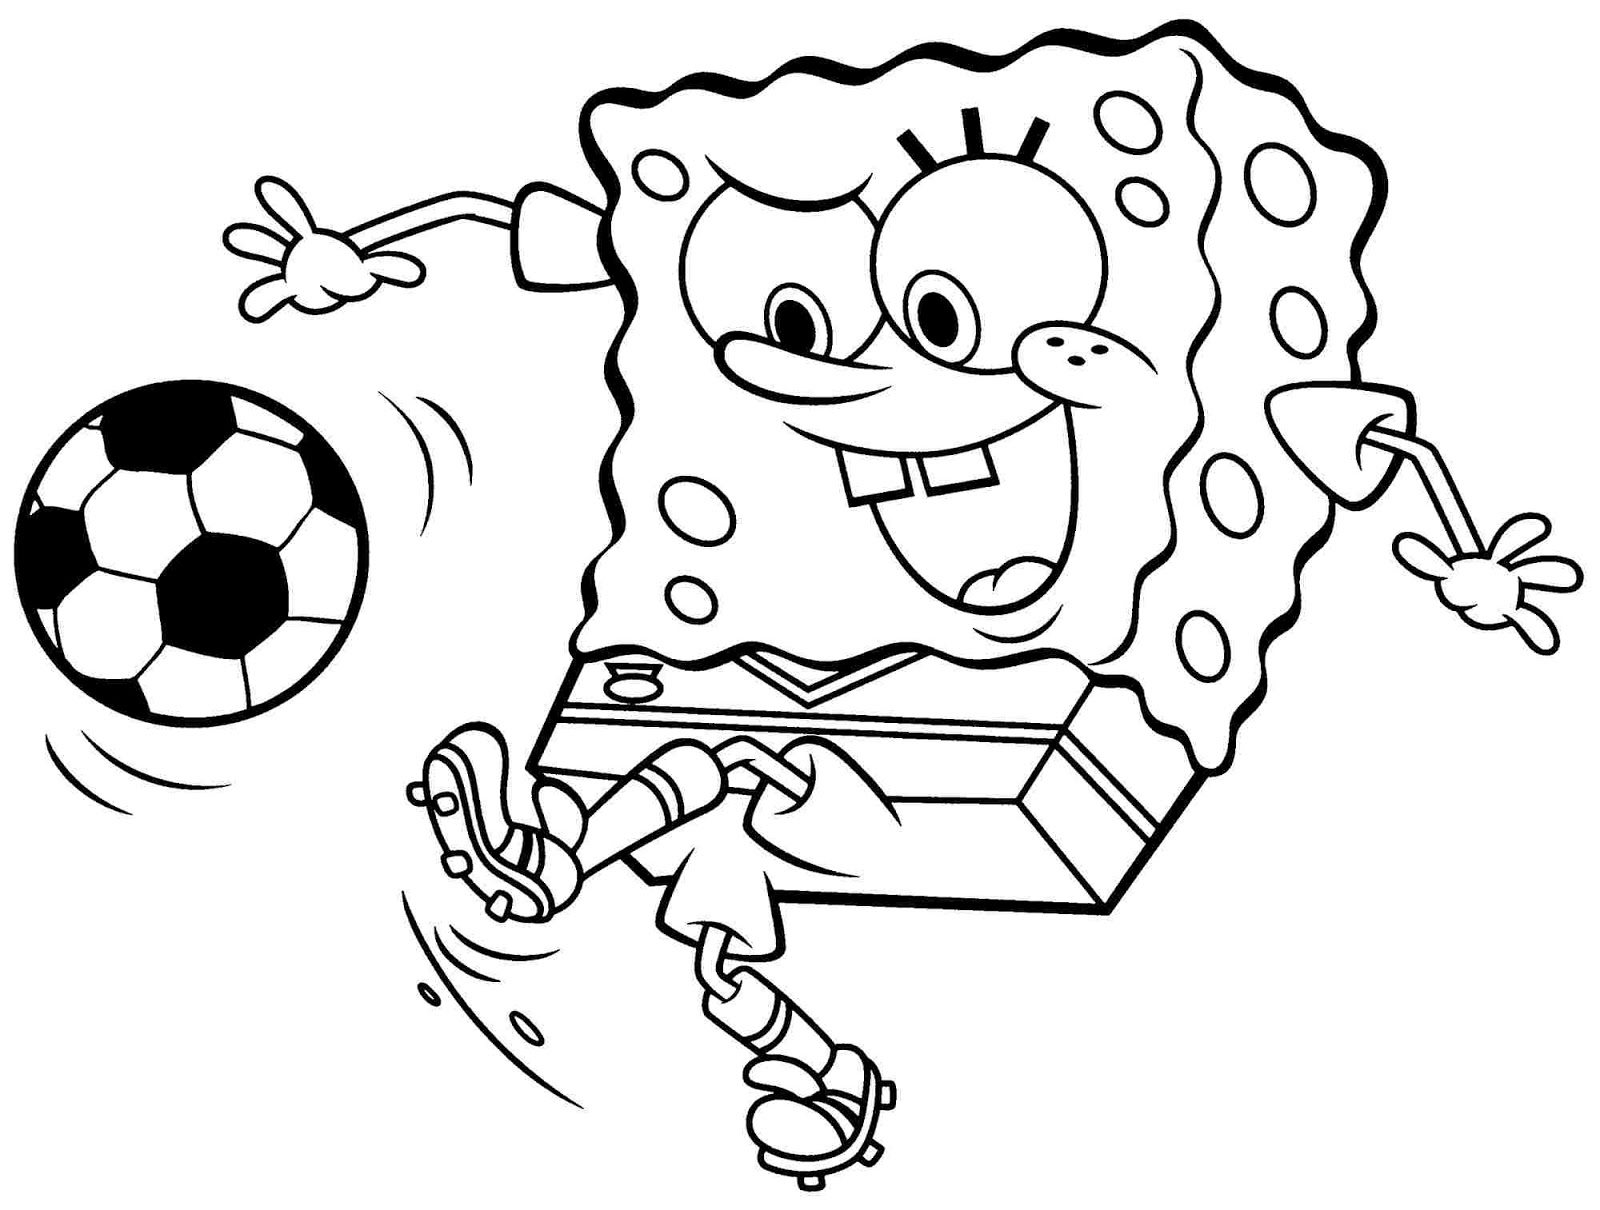 coloring pages of spongebob print download choosing spongebob coloring pages for pages spongebob coloring of